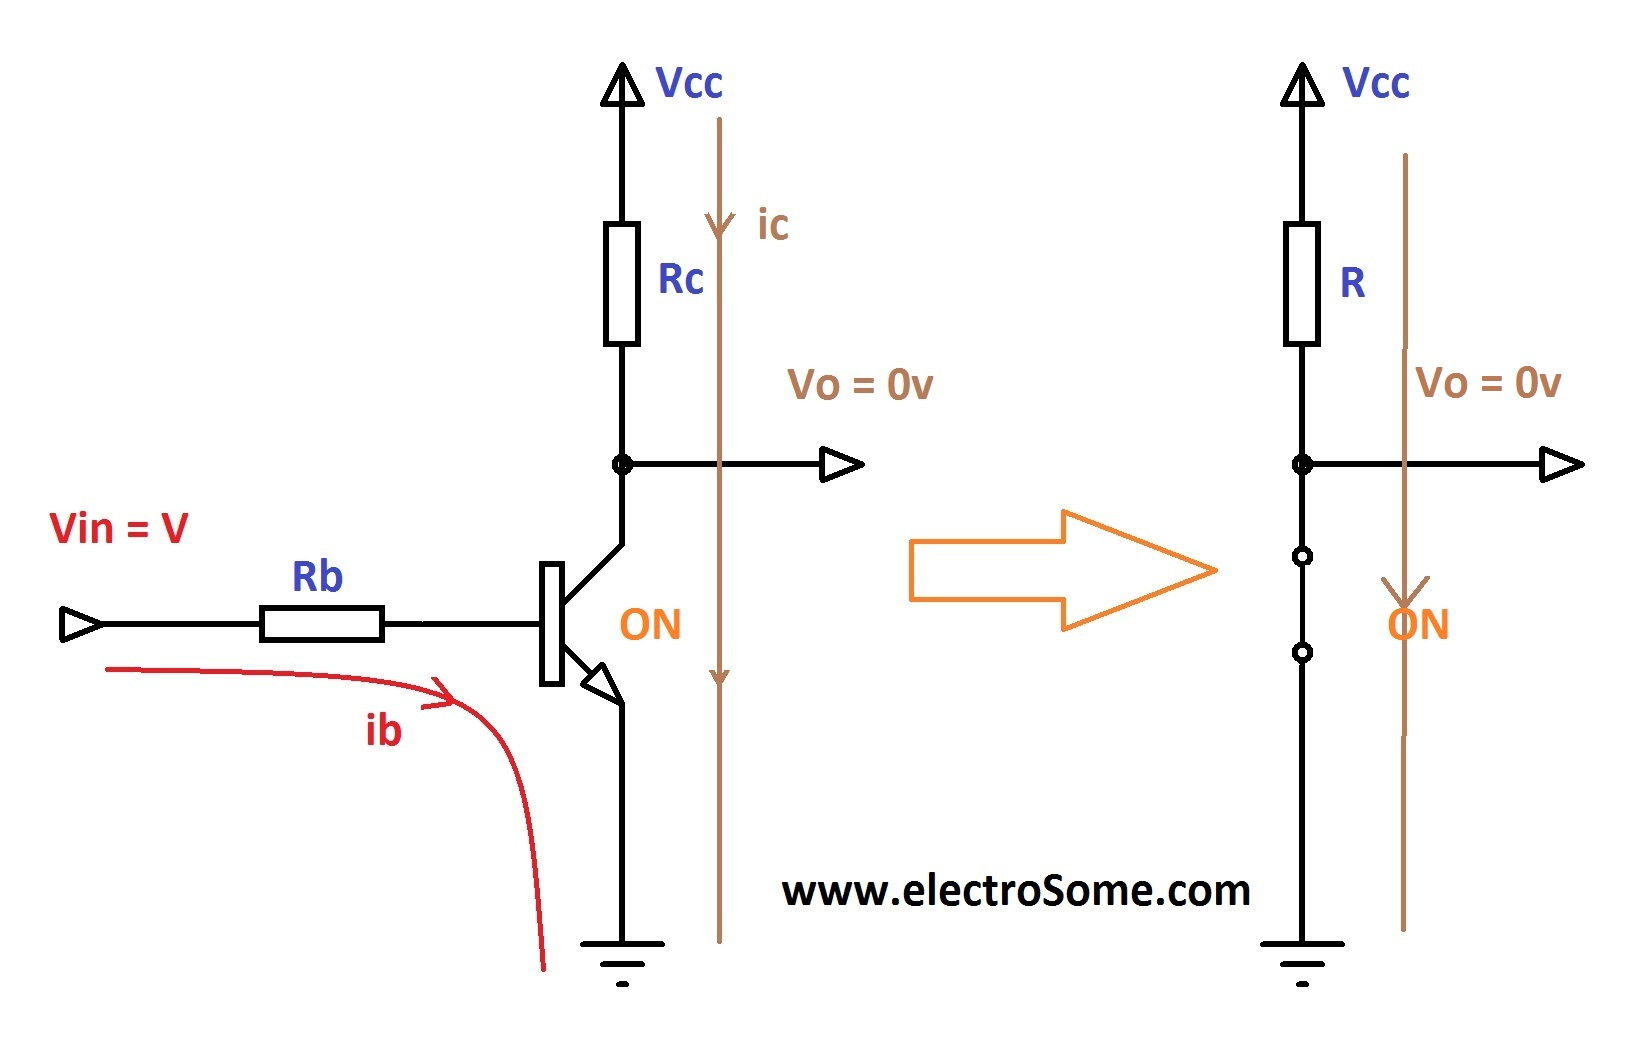 transistor as a switch rh electrosome com Use a Transistor as Switch How a Transistor Is a Switch